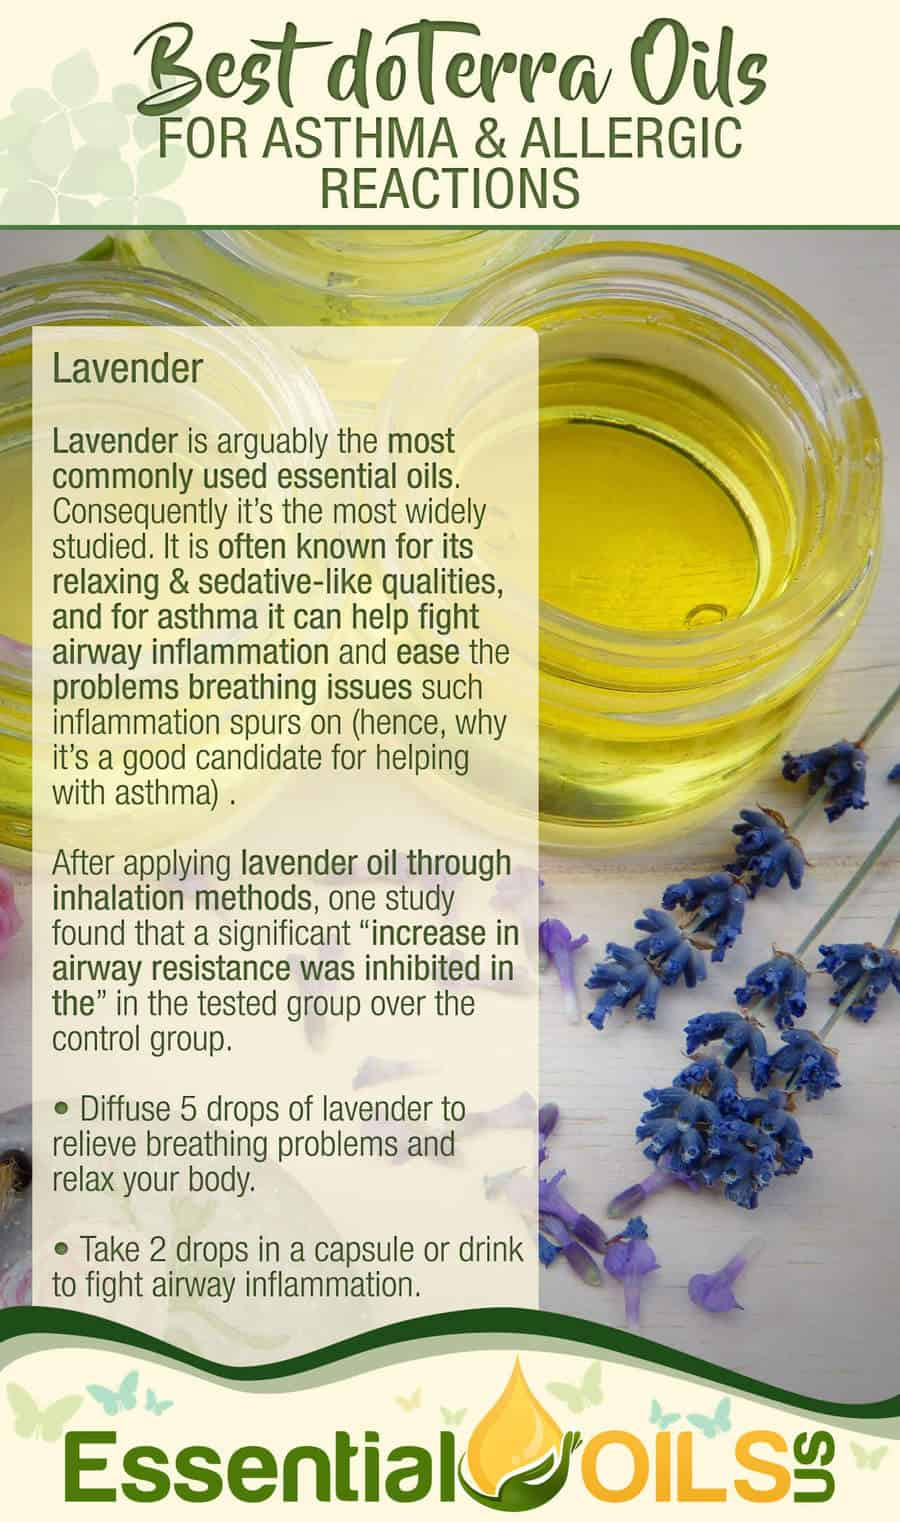 doTerra Essential Oils For Asthma And Allergy - Lavender